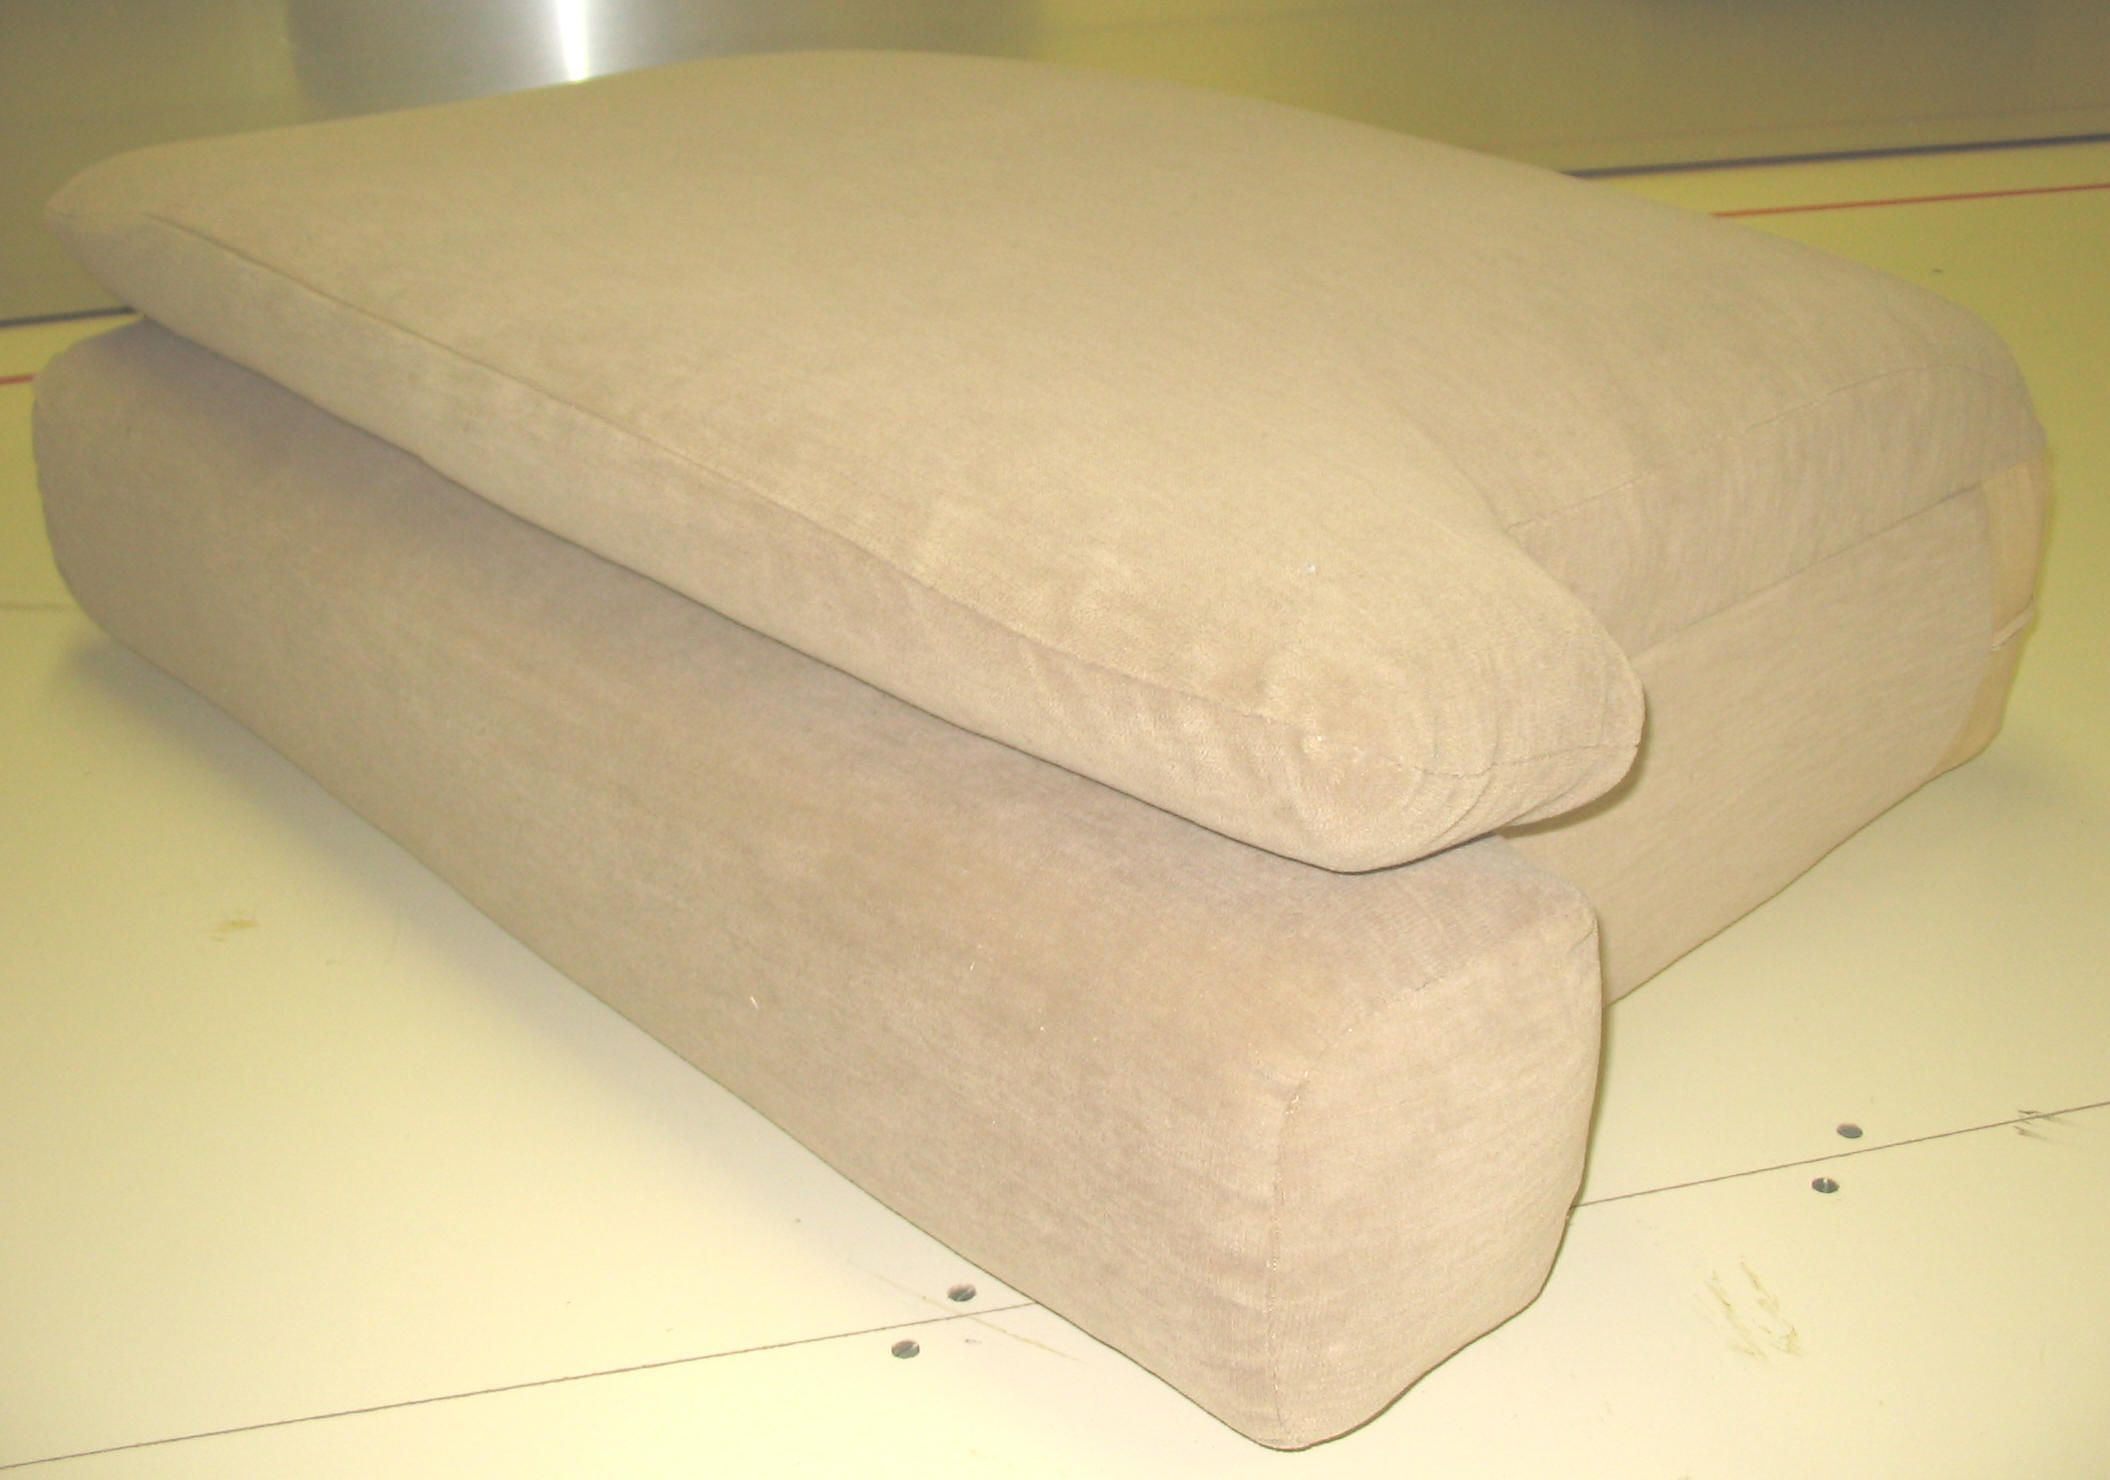 Cut To Size Foam Sofa Replacement Cushion Seat Cushions Rubber